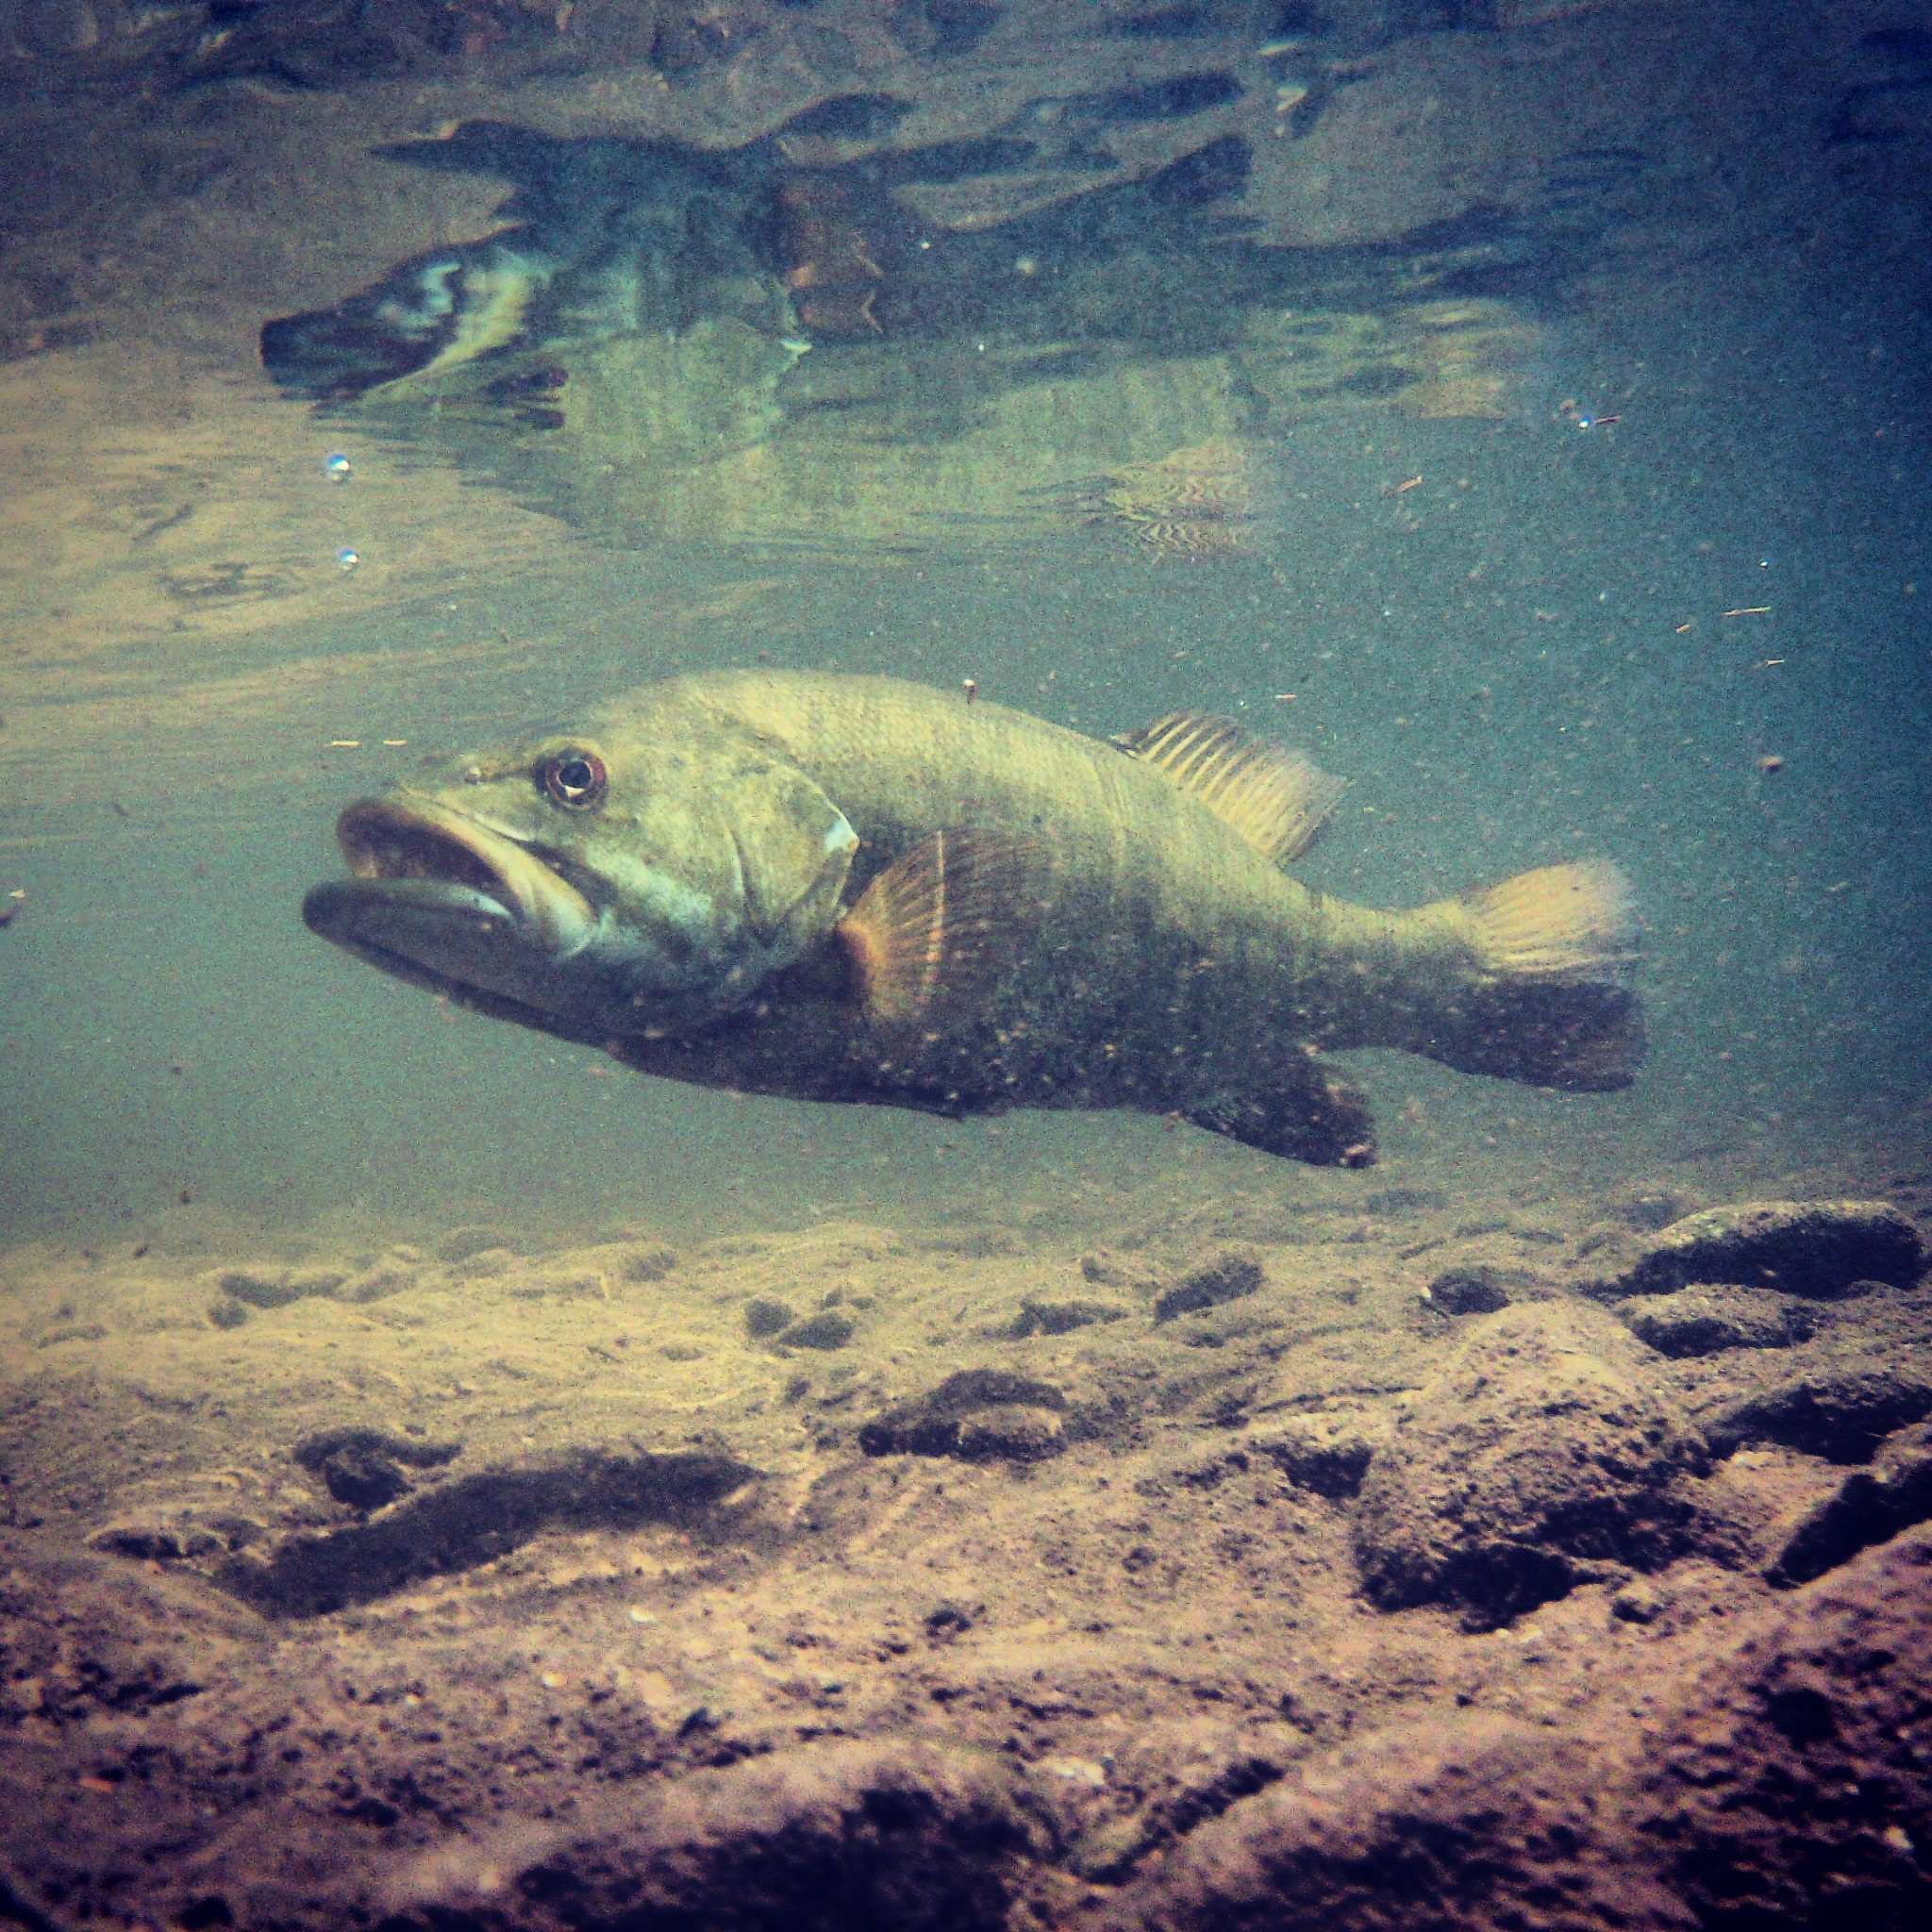 Underwater Smallmouth Bass